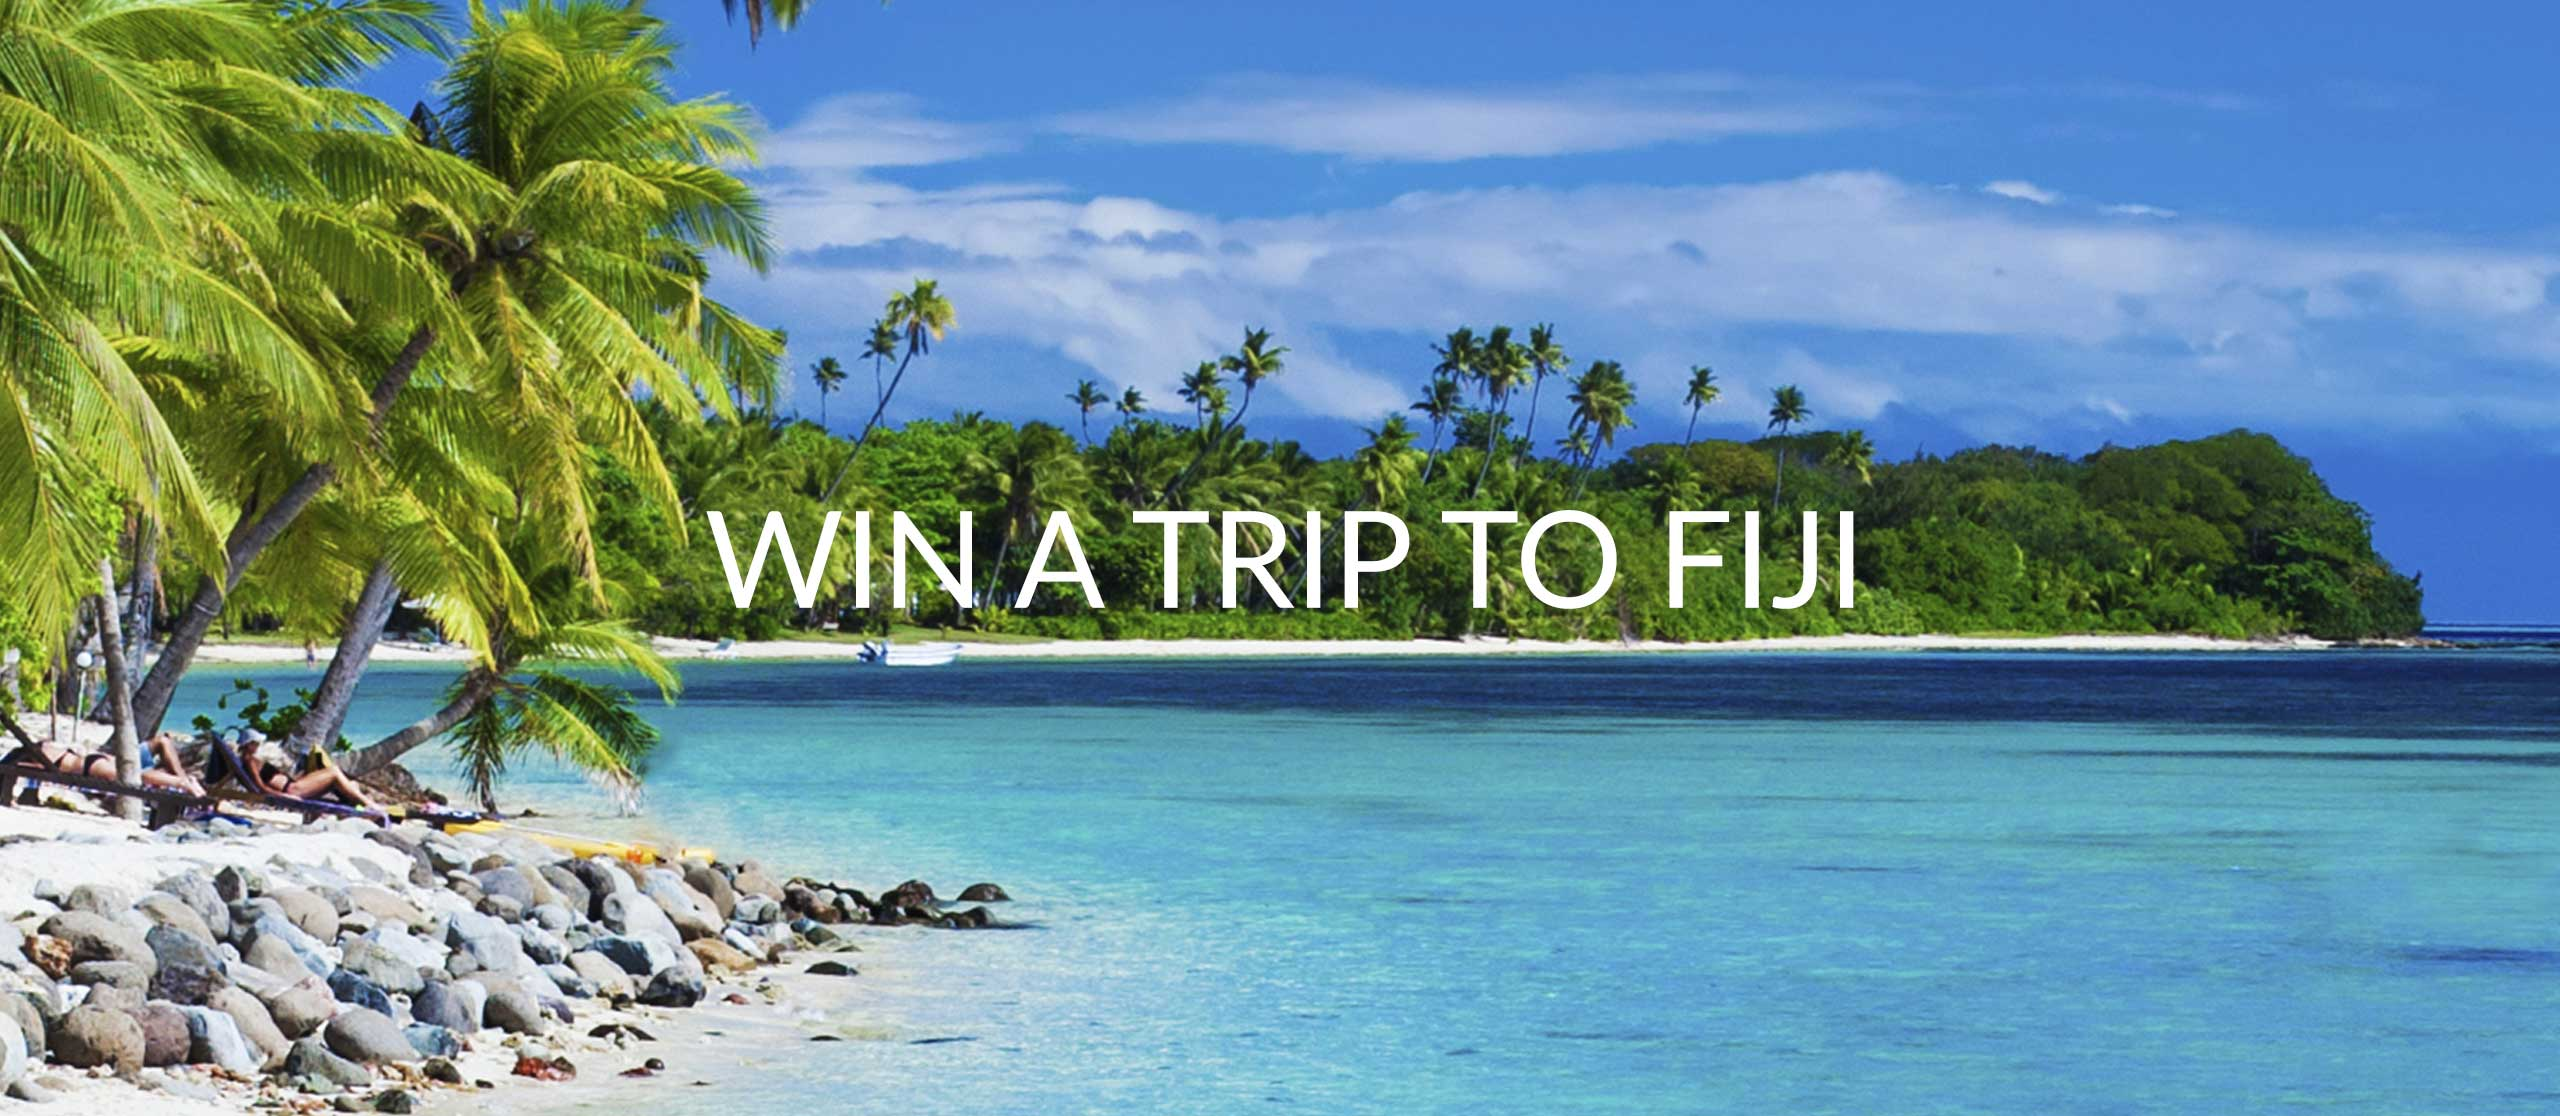 WIN A FREE TRIP TO FIJI